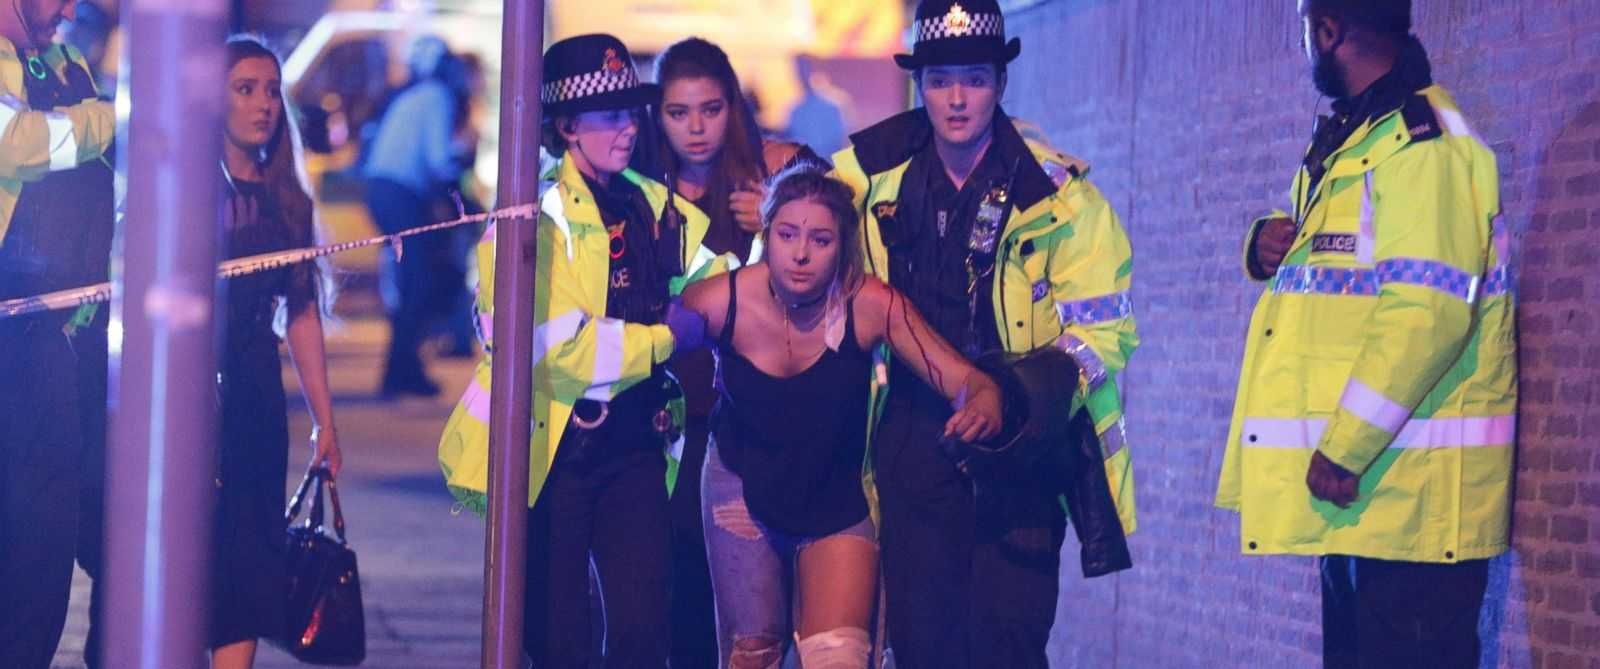 Explosions Rock Ariana Grande Concert In Manchester; Mass Casualties Reported | Ariana Grande